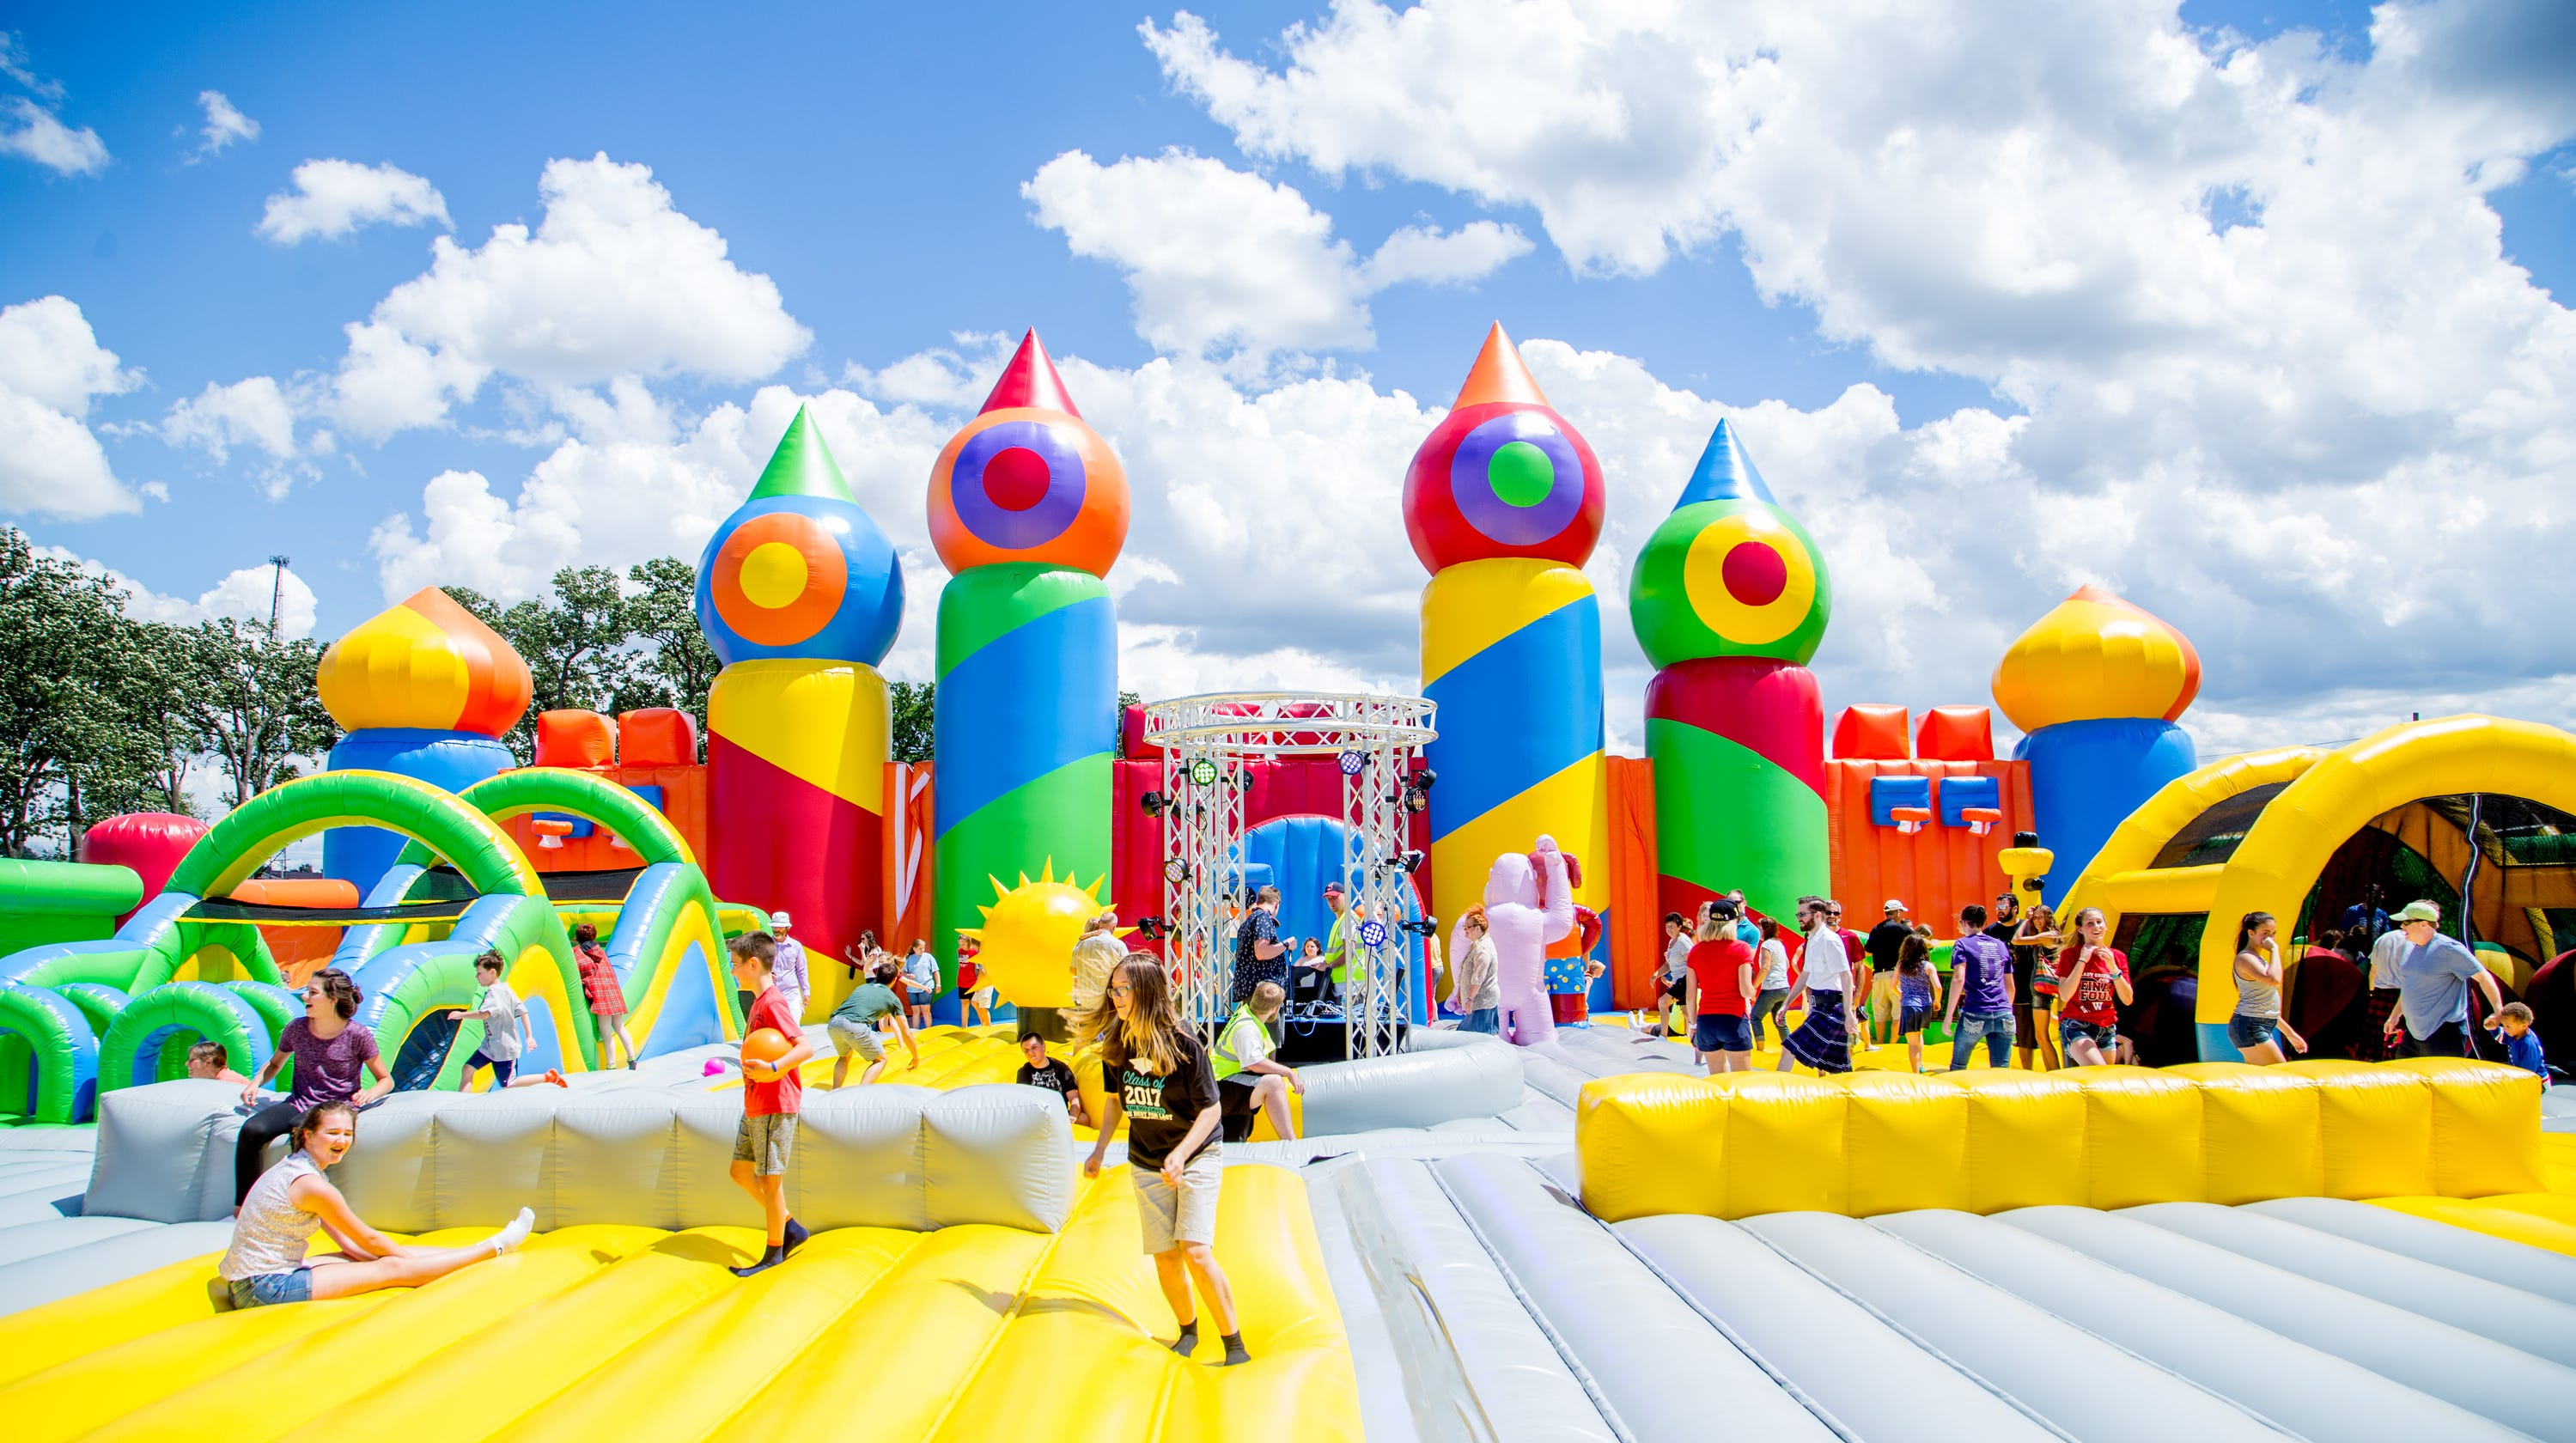 46a7c70ee492 Big Bounce America s biggest bounce house coming to Indianapolis